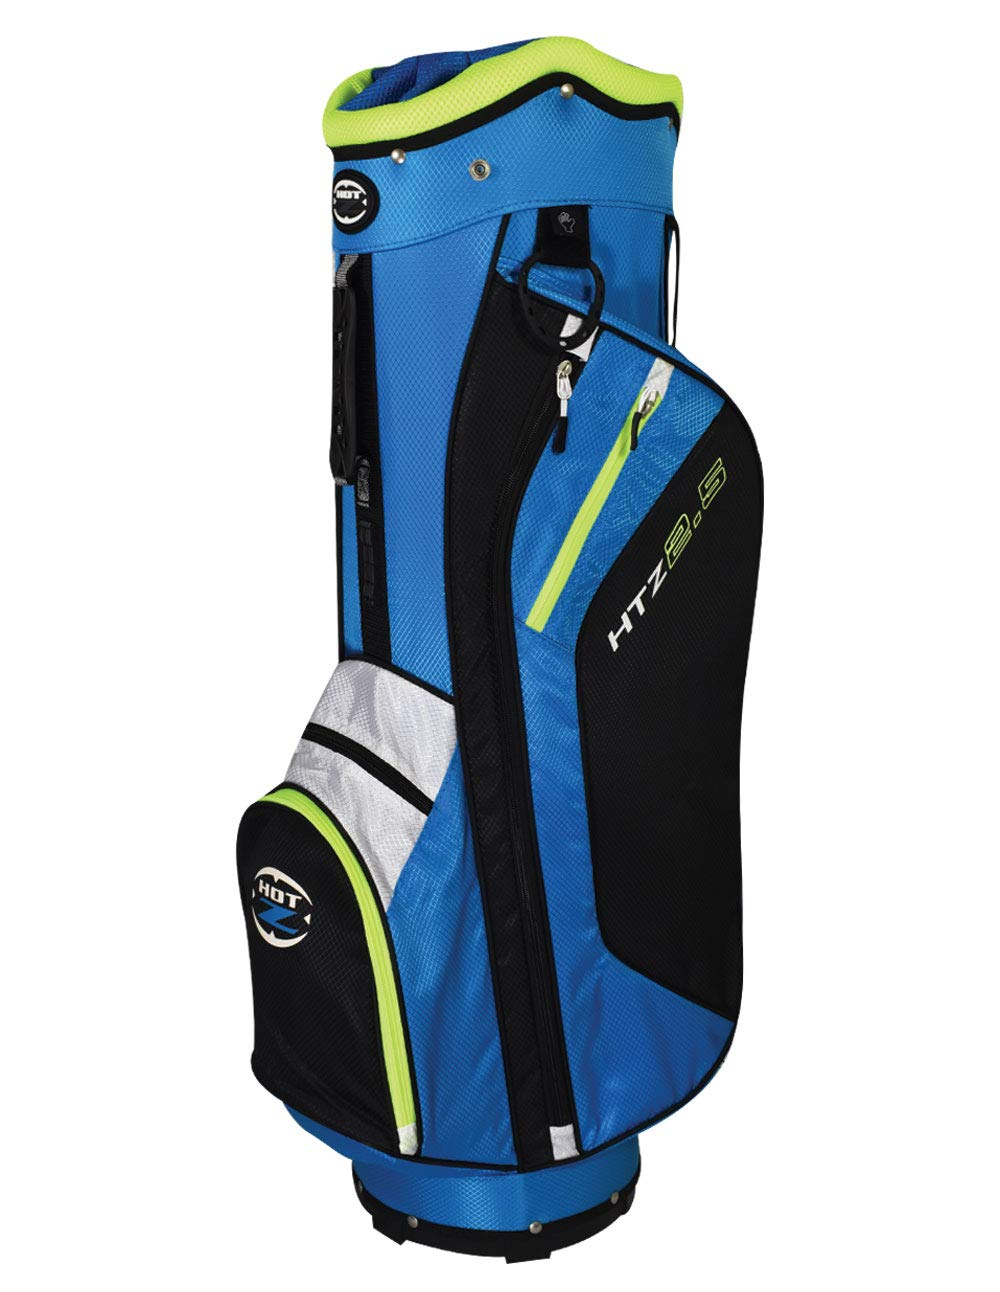 Hot-Z 2017 Golf 2.5 Cart Bag, Caribbean Blue by Hot-Z Golf